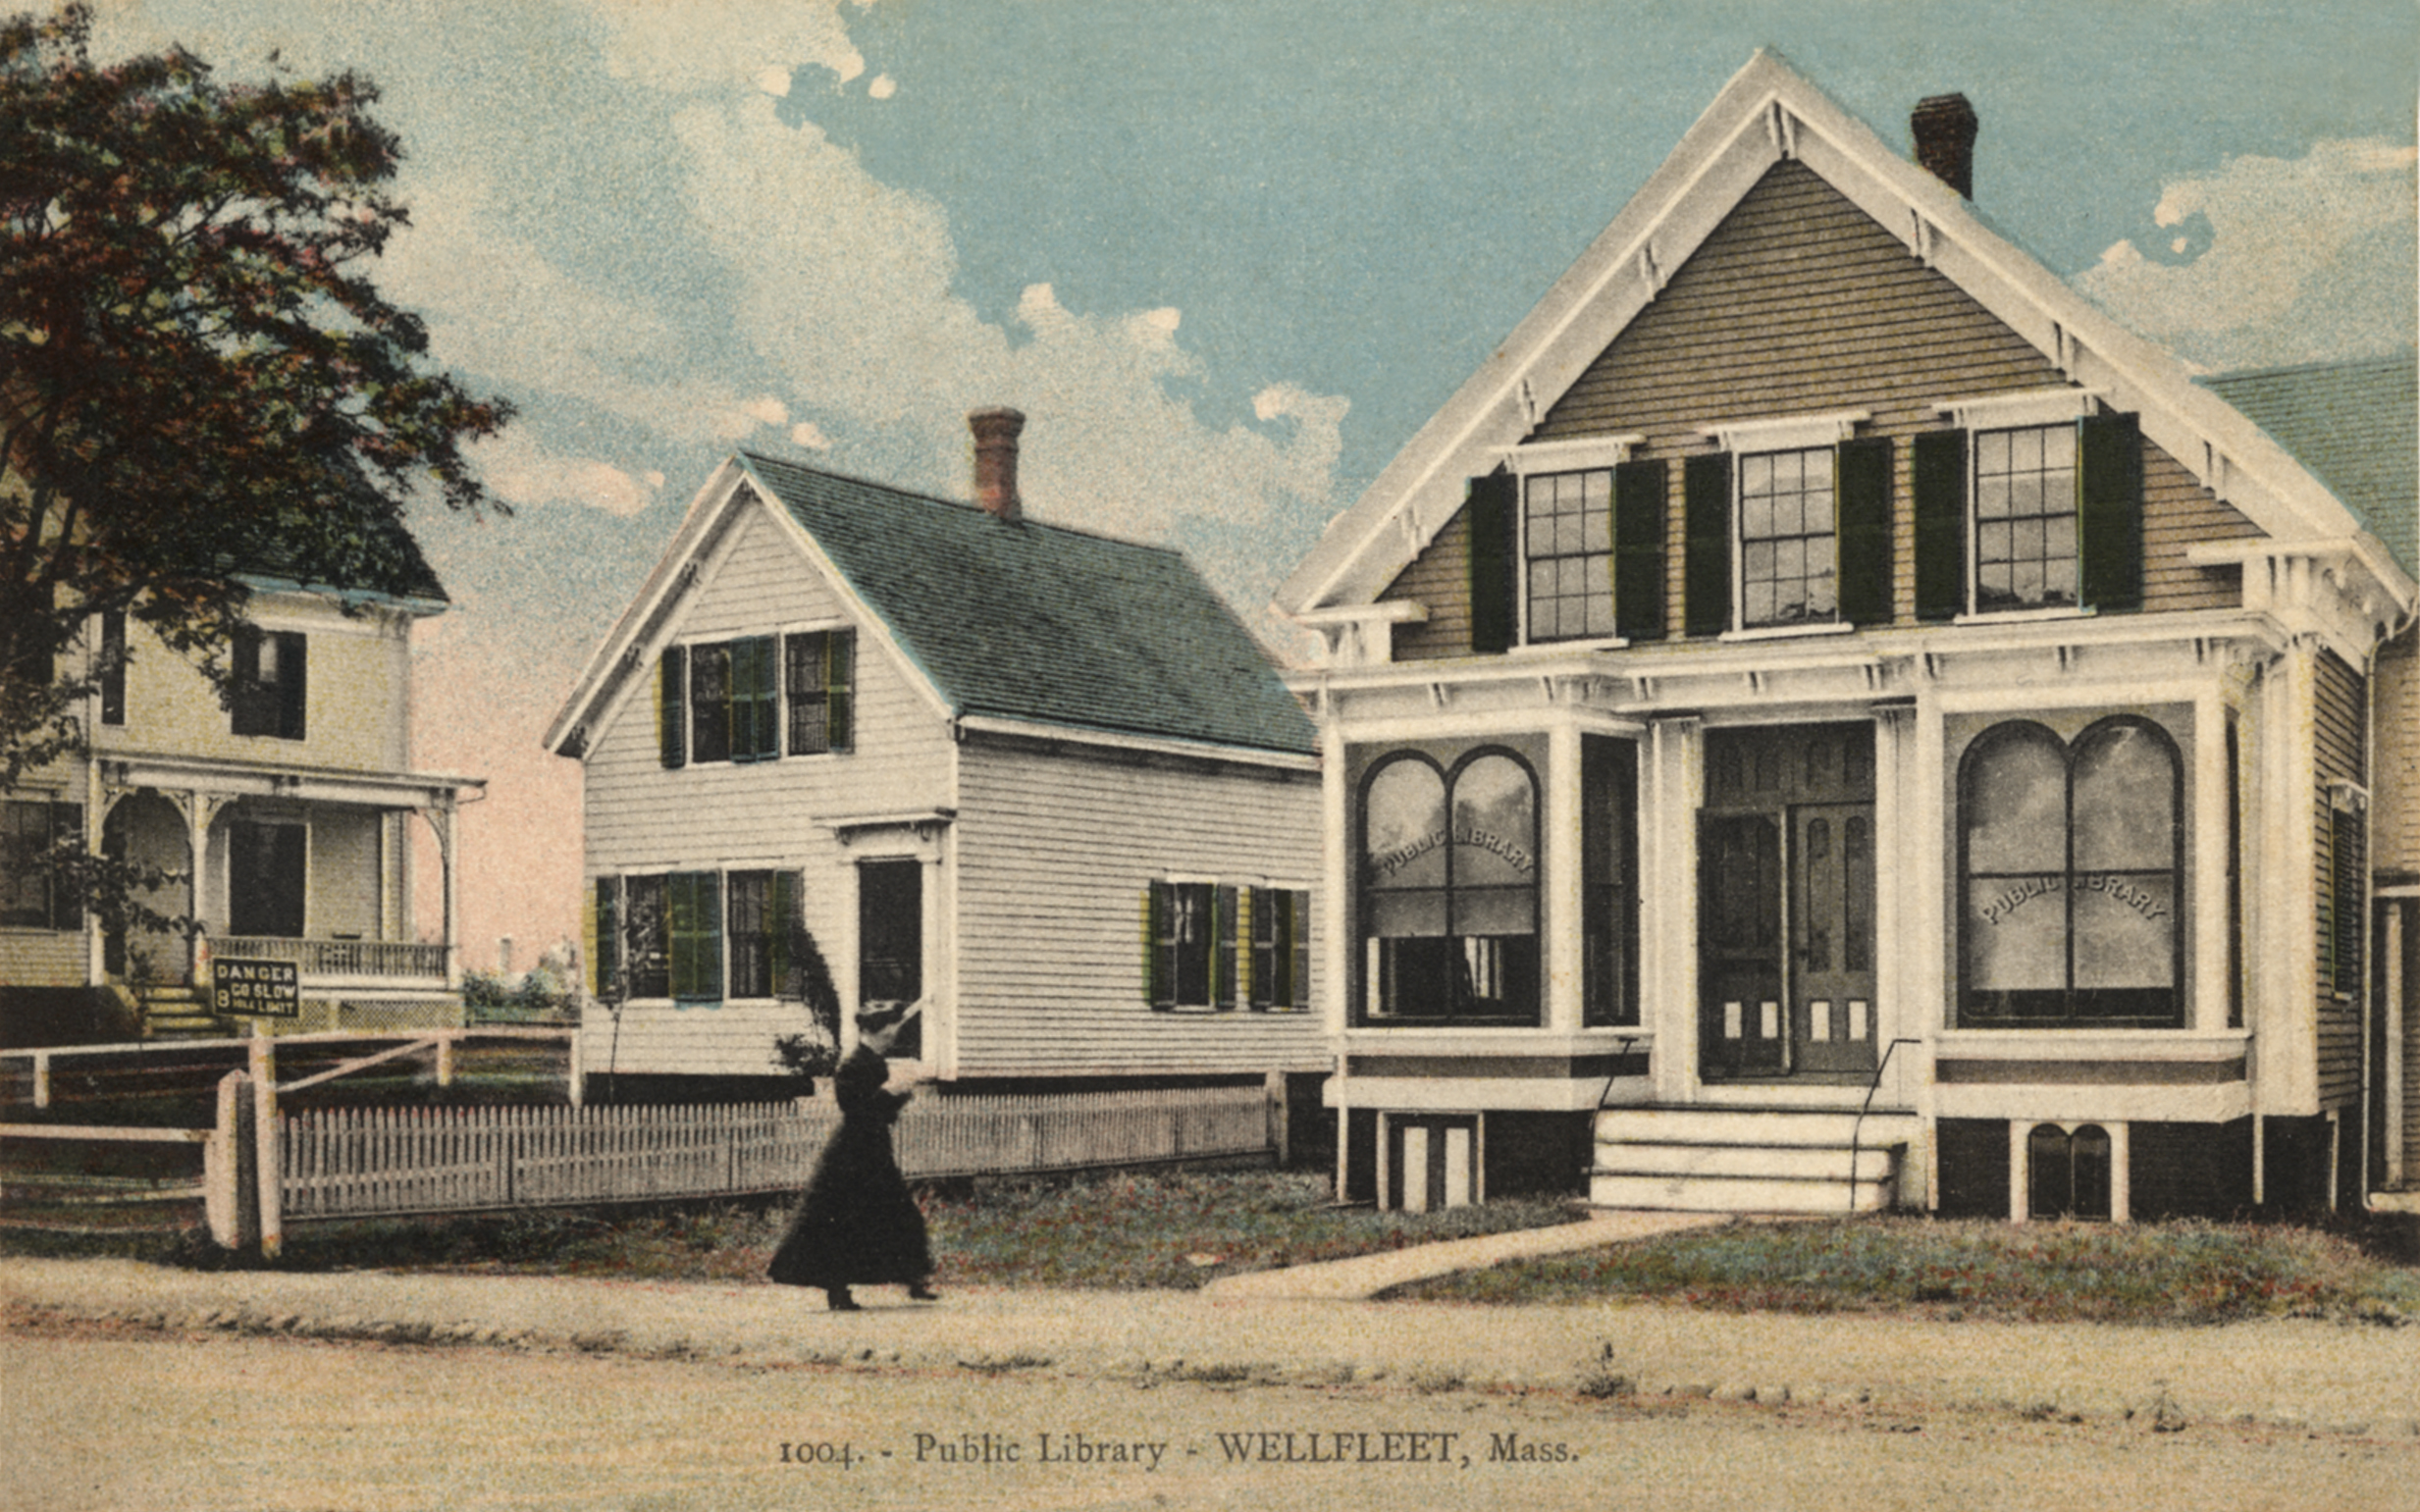 The Historical Society building at the turn of the last century.